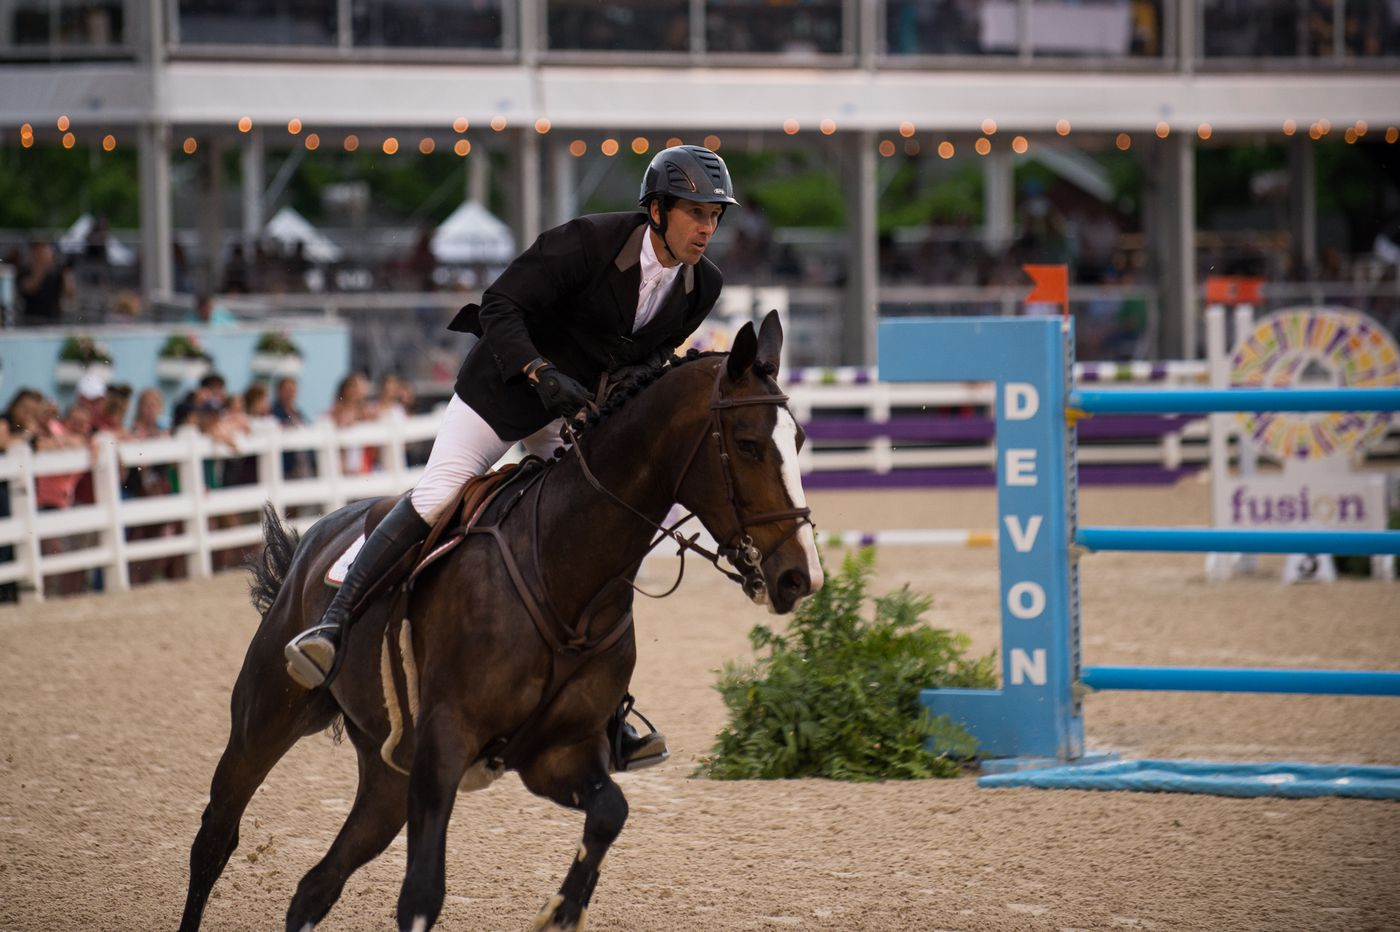 Pennsylvanian Andy Kocher races to victory in Devon Horse Show's Open Jumper Stake